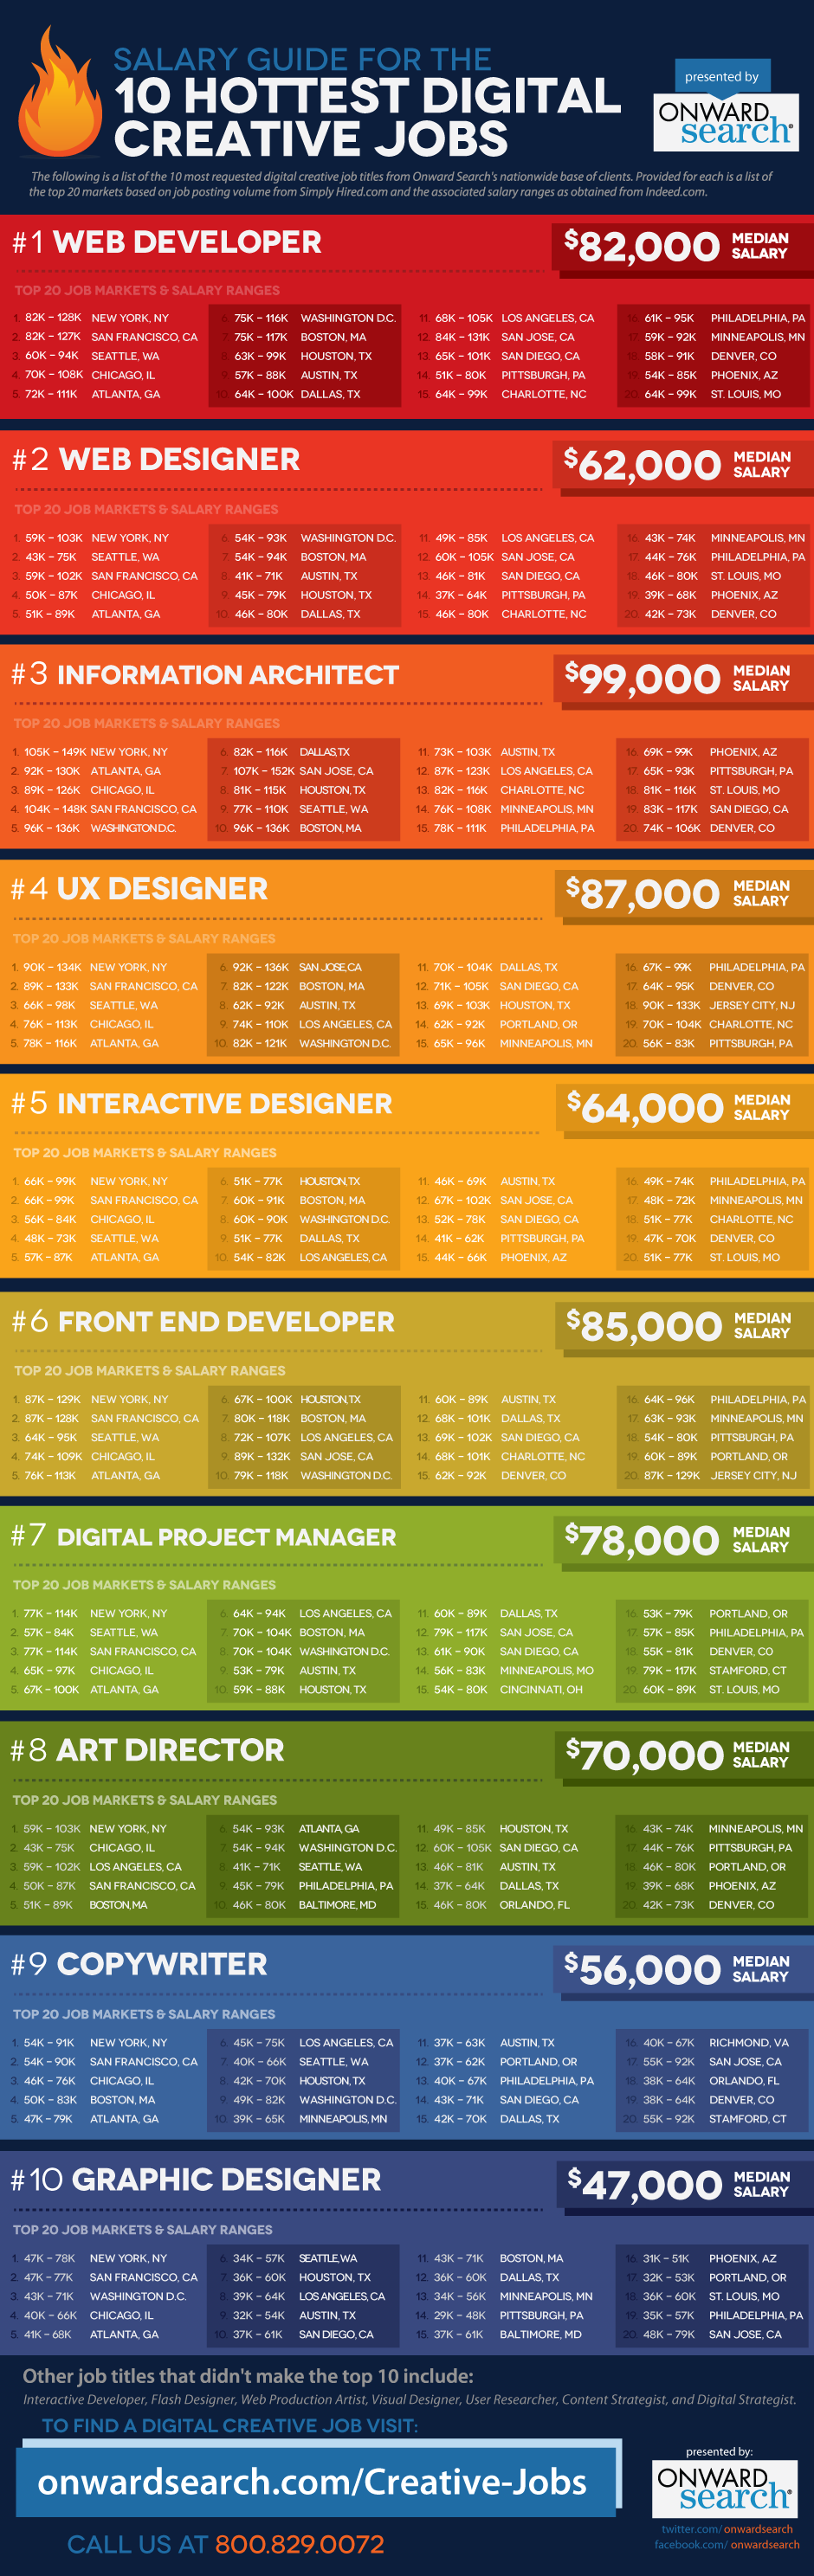 Salary guide for the 10 hottest digital creative jobs